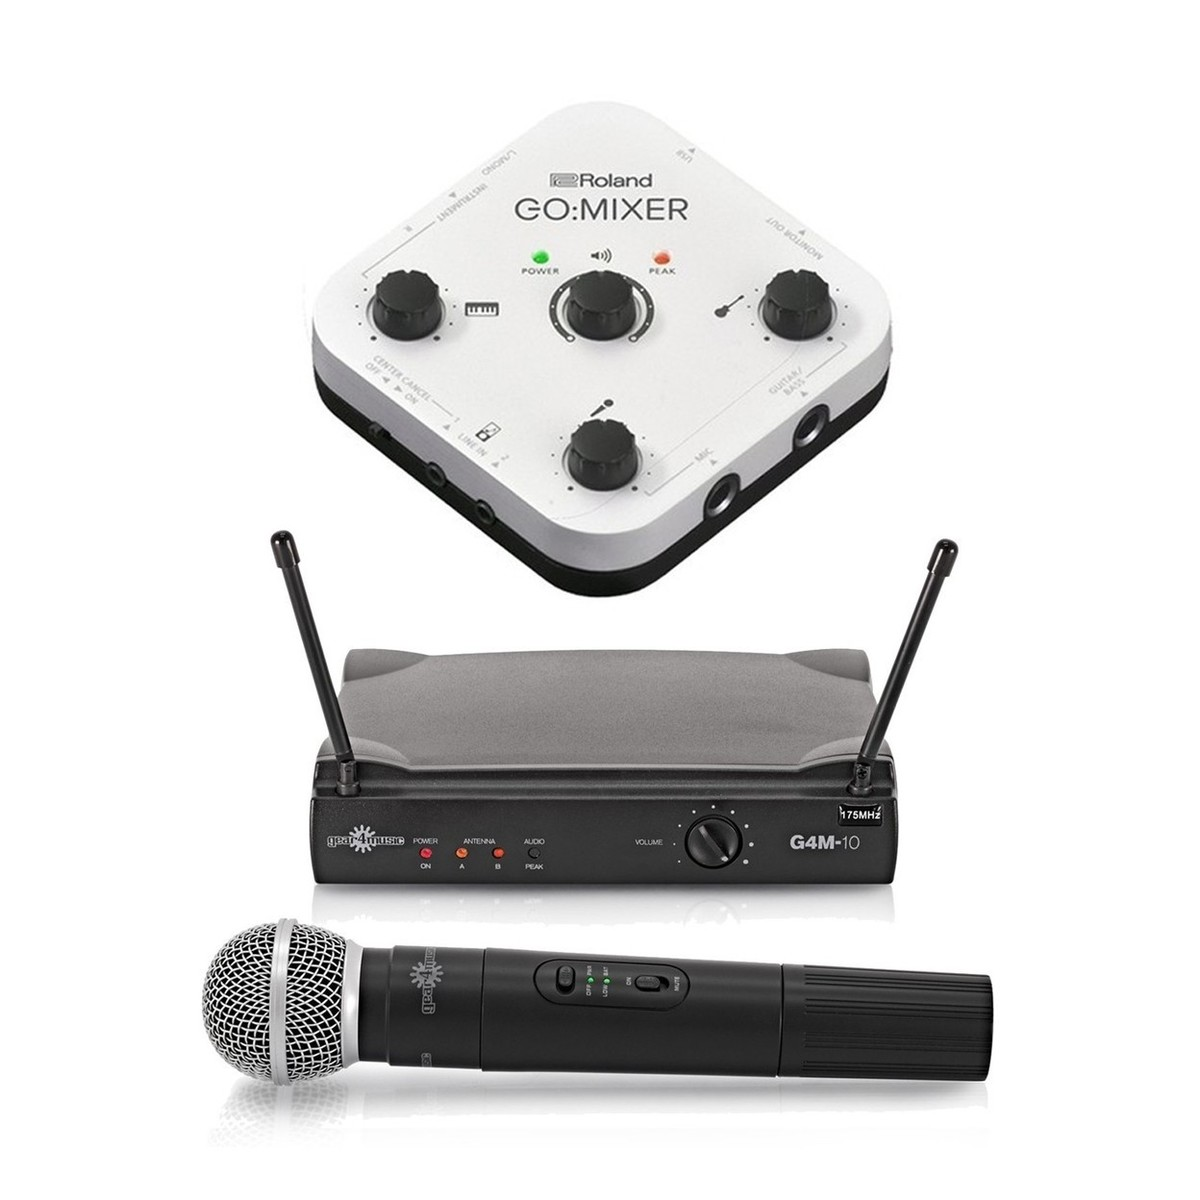 Roland Gomixer Mixer For Smartphones With Wireless Microphone Low Cost Mic System Main Loading Zoom